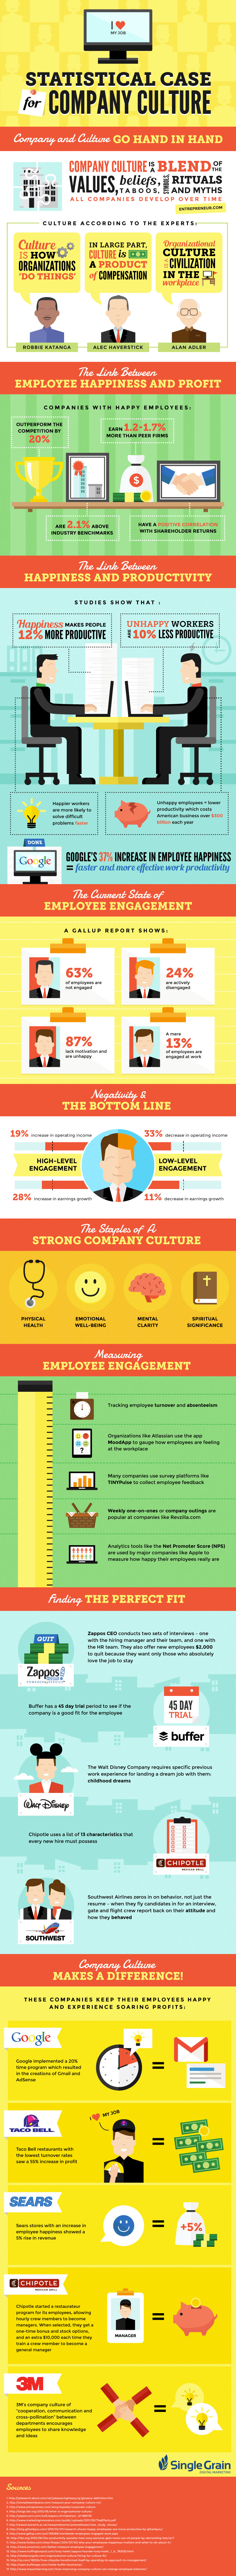 company-culture-infographic